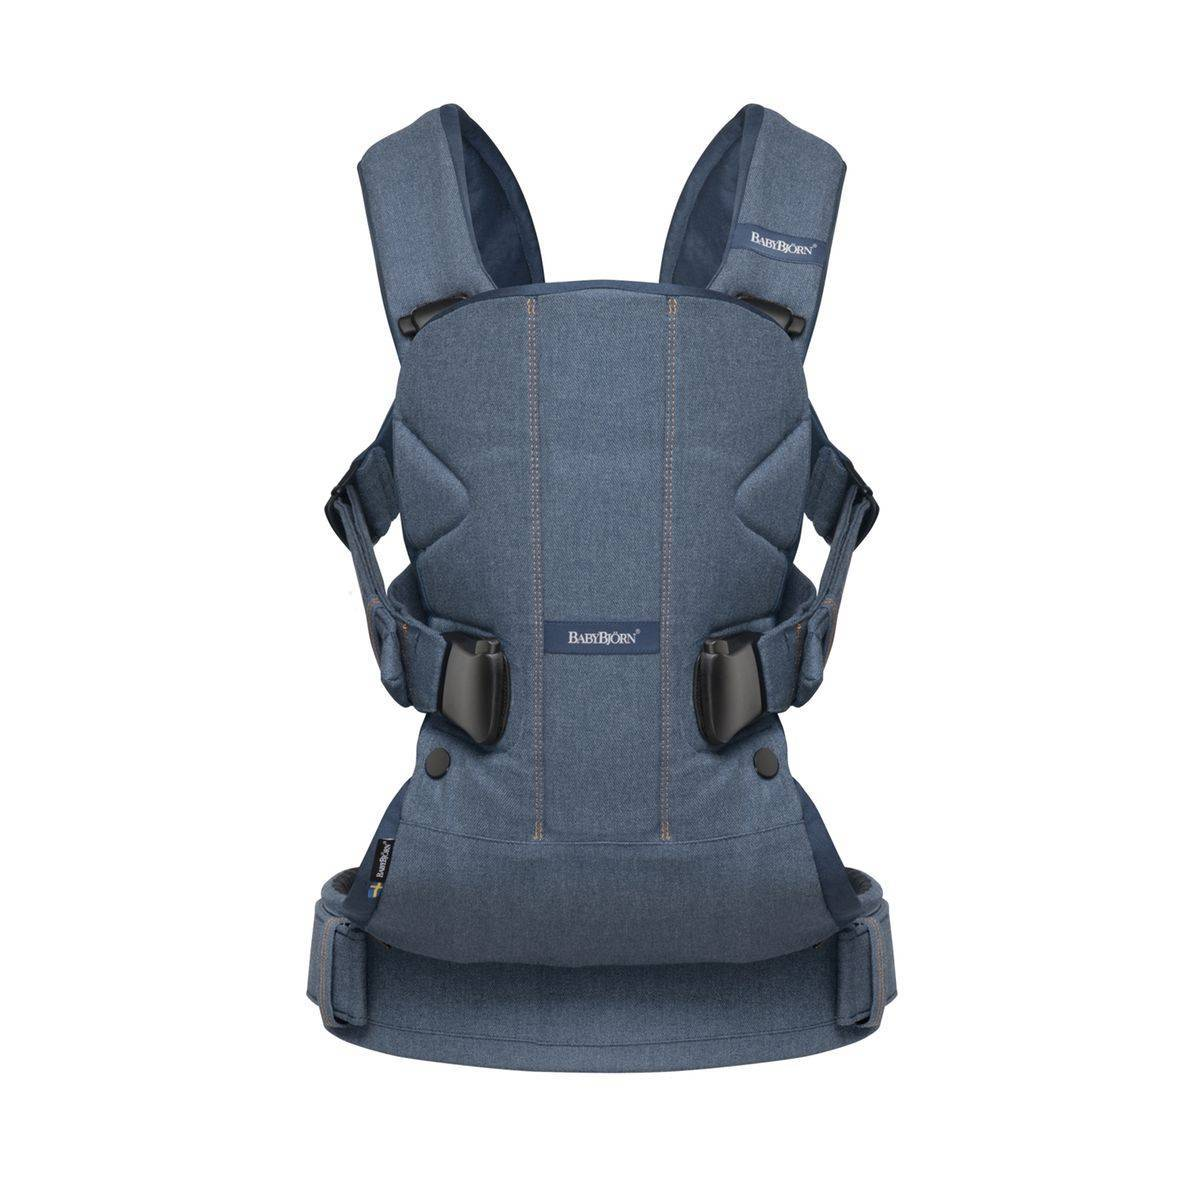 BABYBJORN Porte-bébé Carrier One denim - BABYBJORN